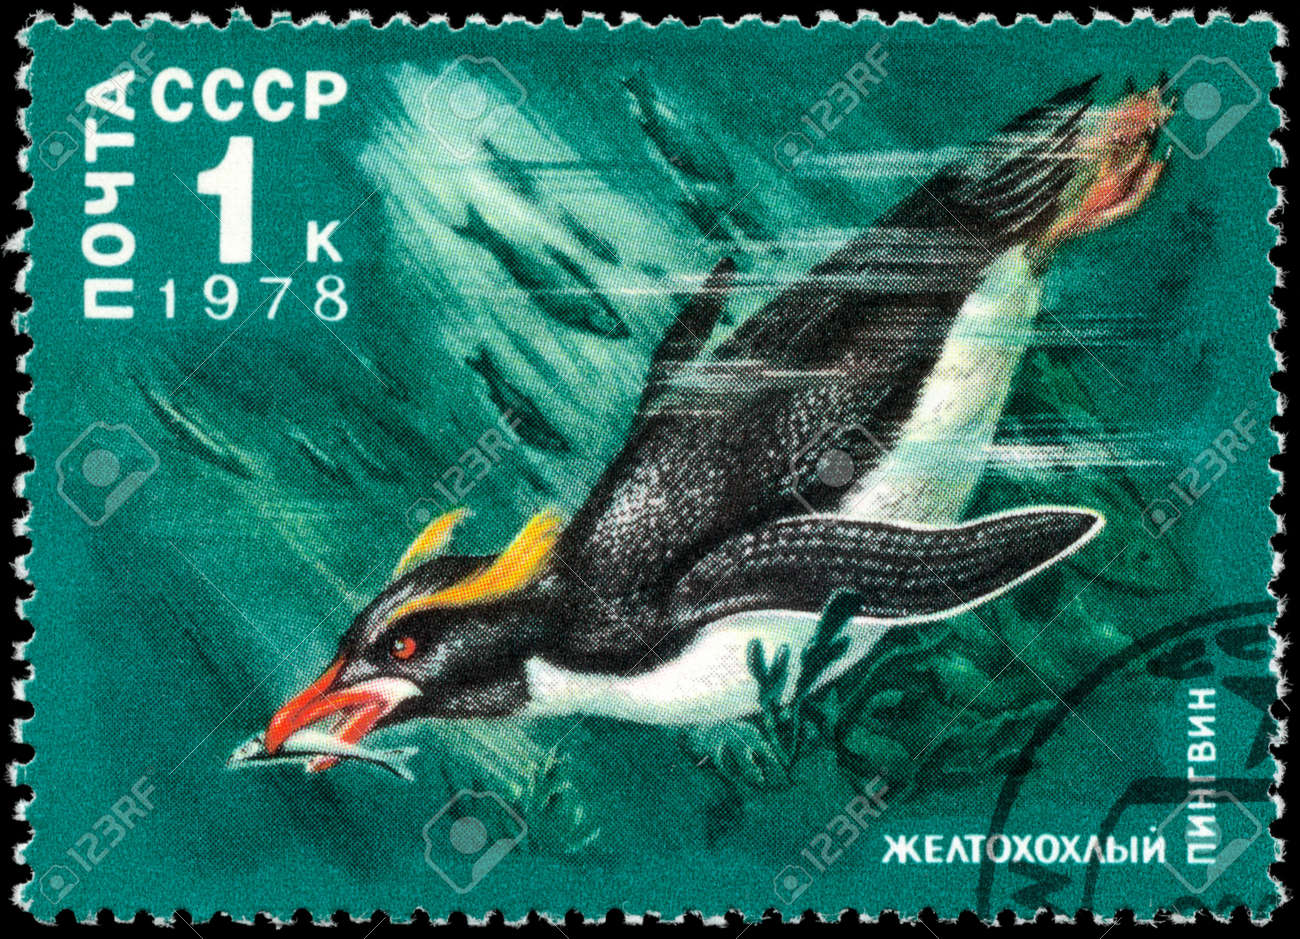 USSR - CIRCA 1978: A Stamp printed in USSR shows image of a Crested Penguin from the series